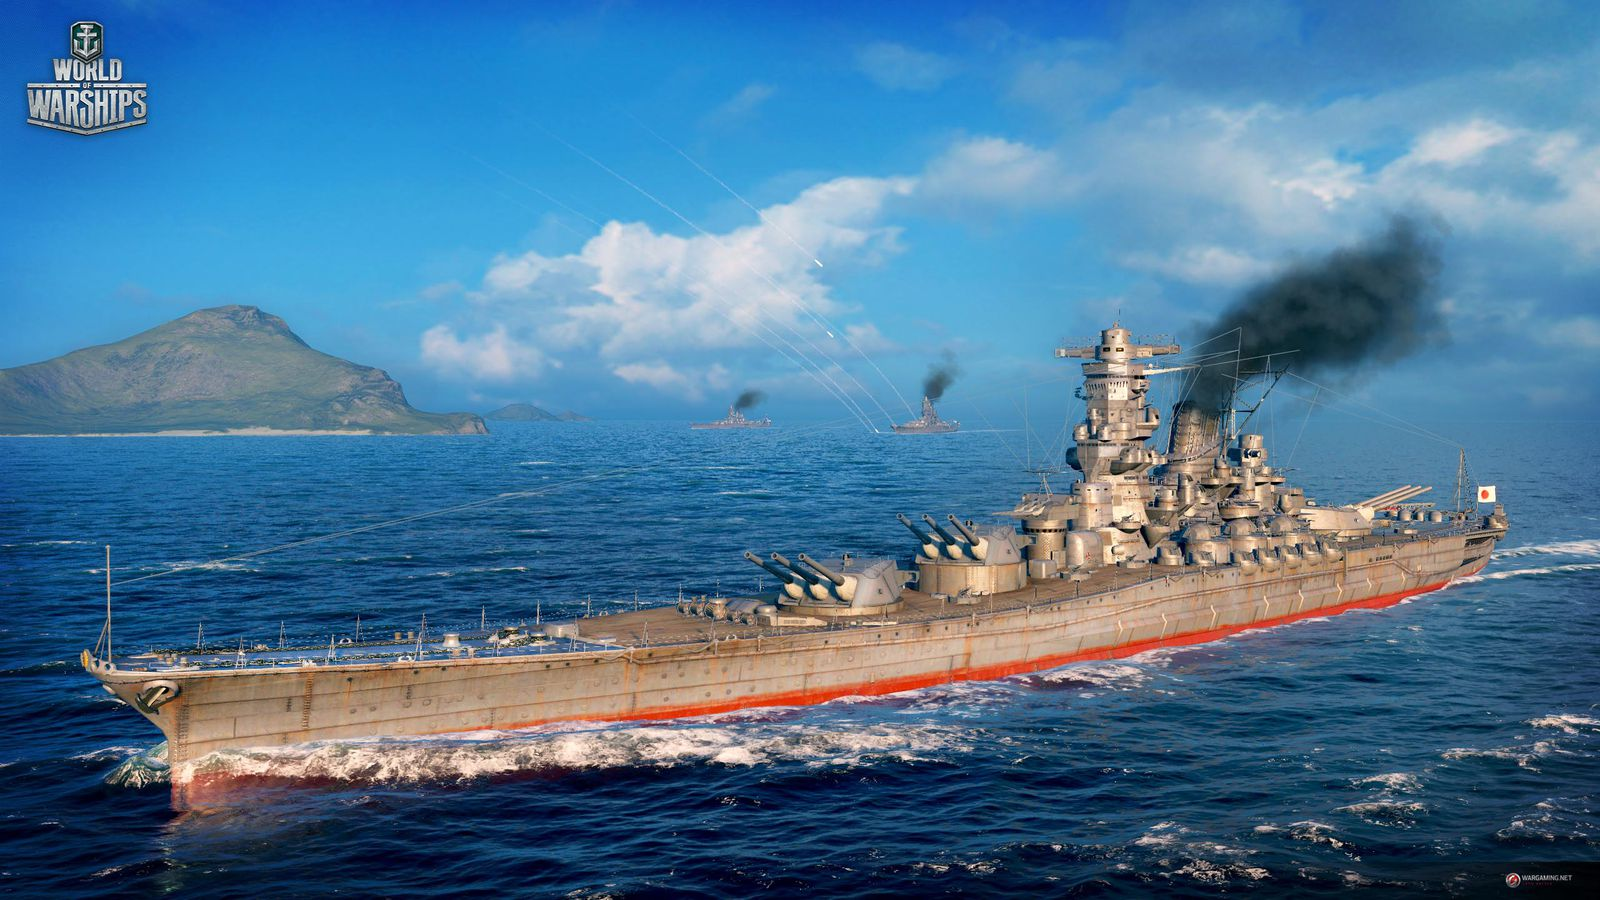 World of Warships open beta announced with new trailer